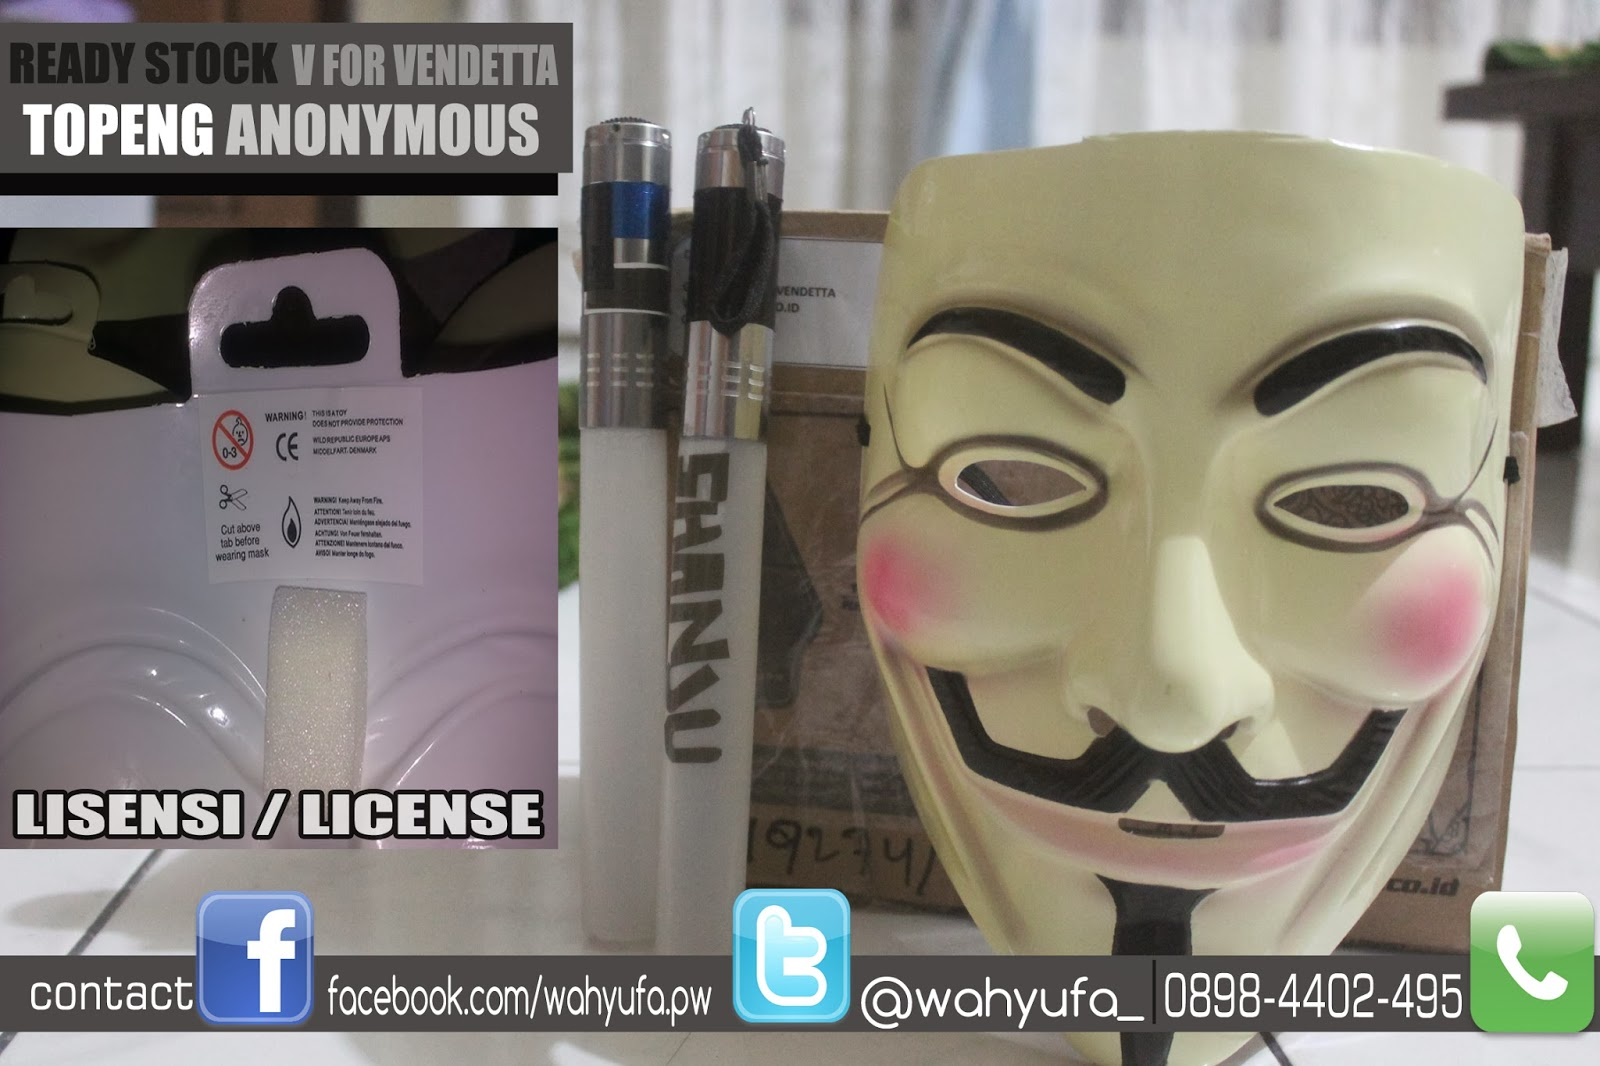 Jual Topeng Anonymous, v fpr vendetta, guy fawkes